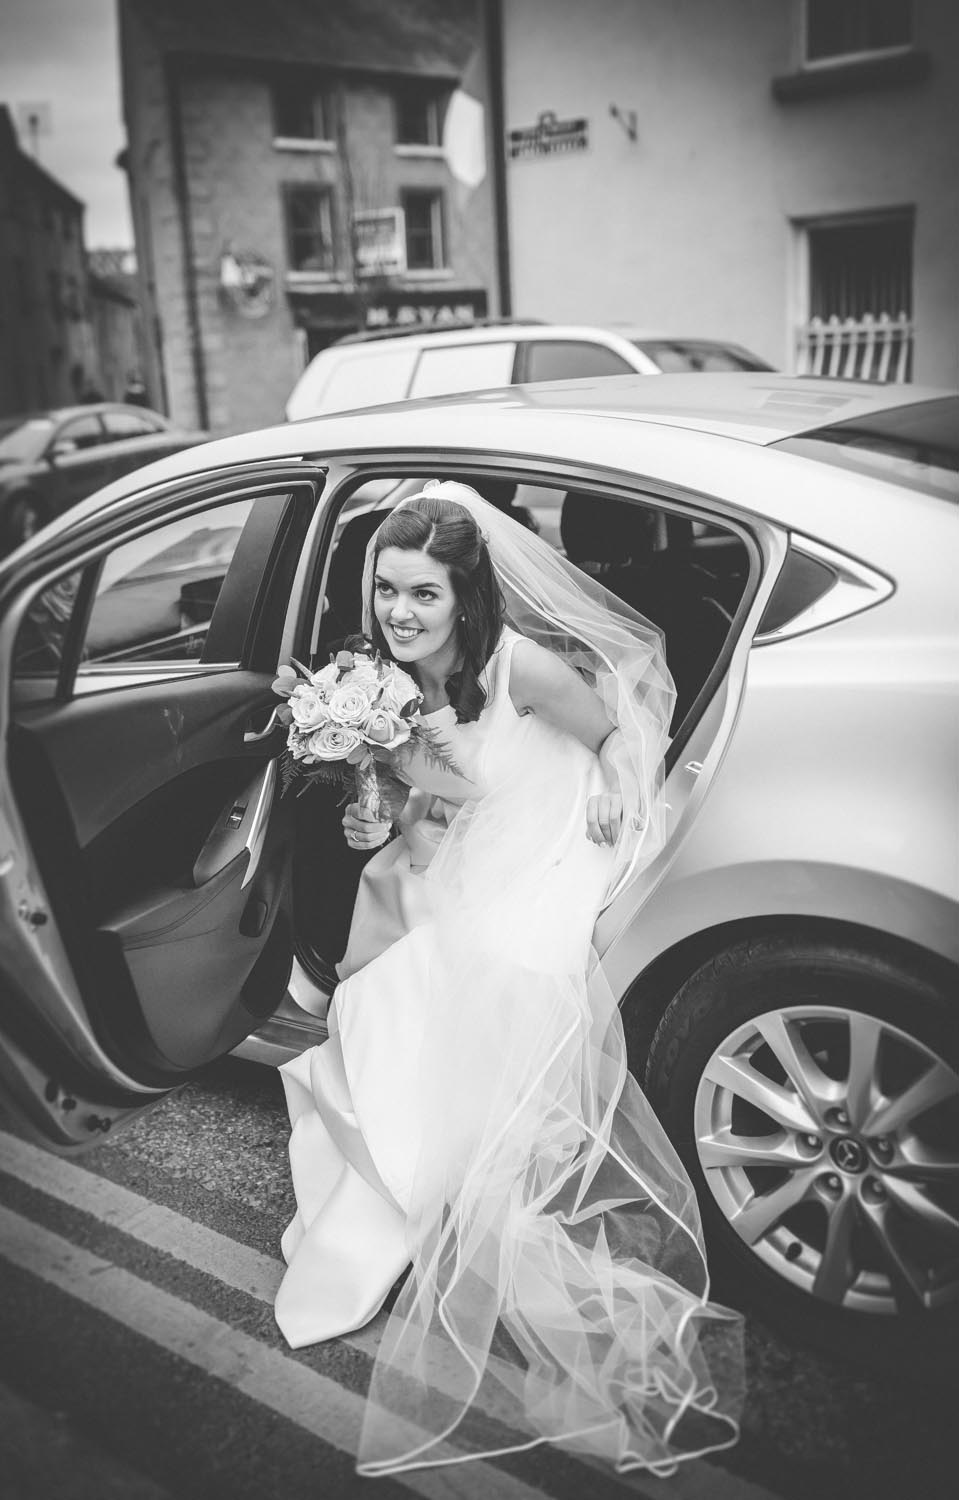 Step House wedding photographer Carlow Borris040.jpg